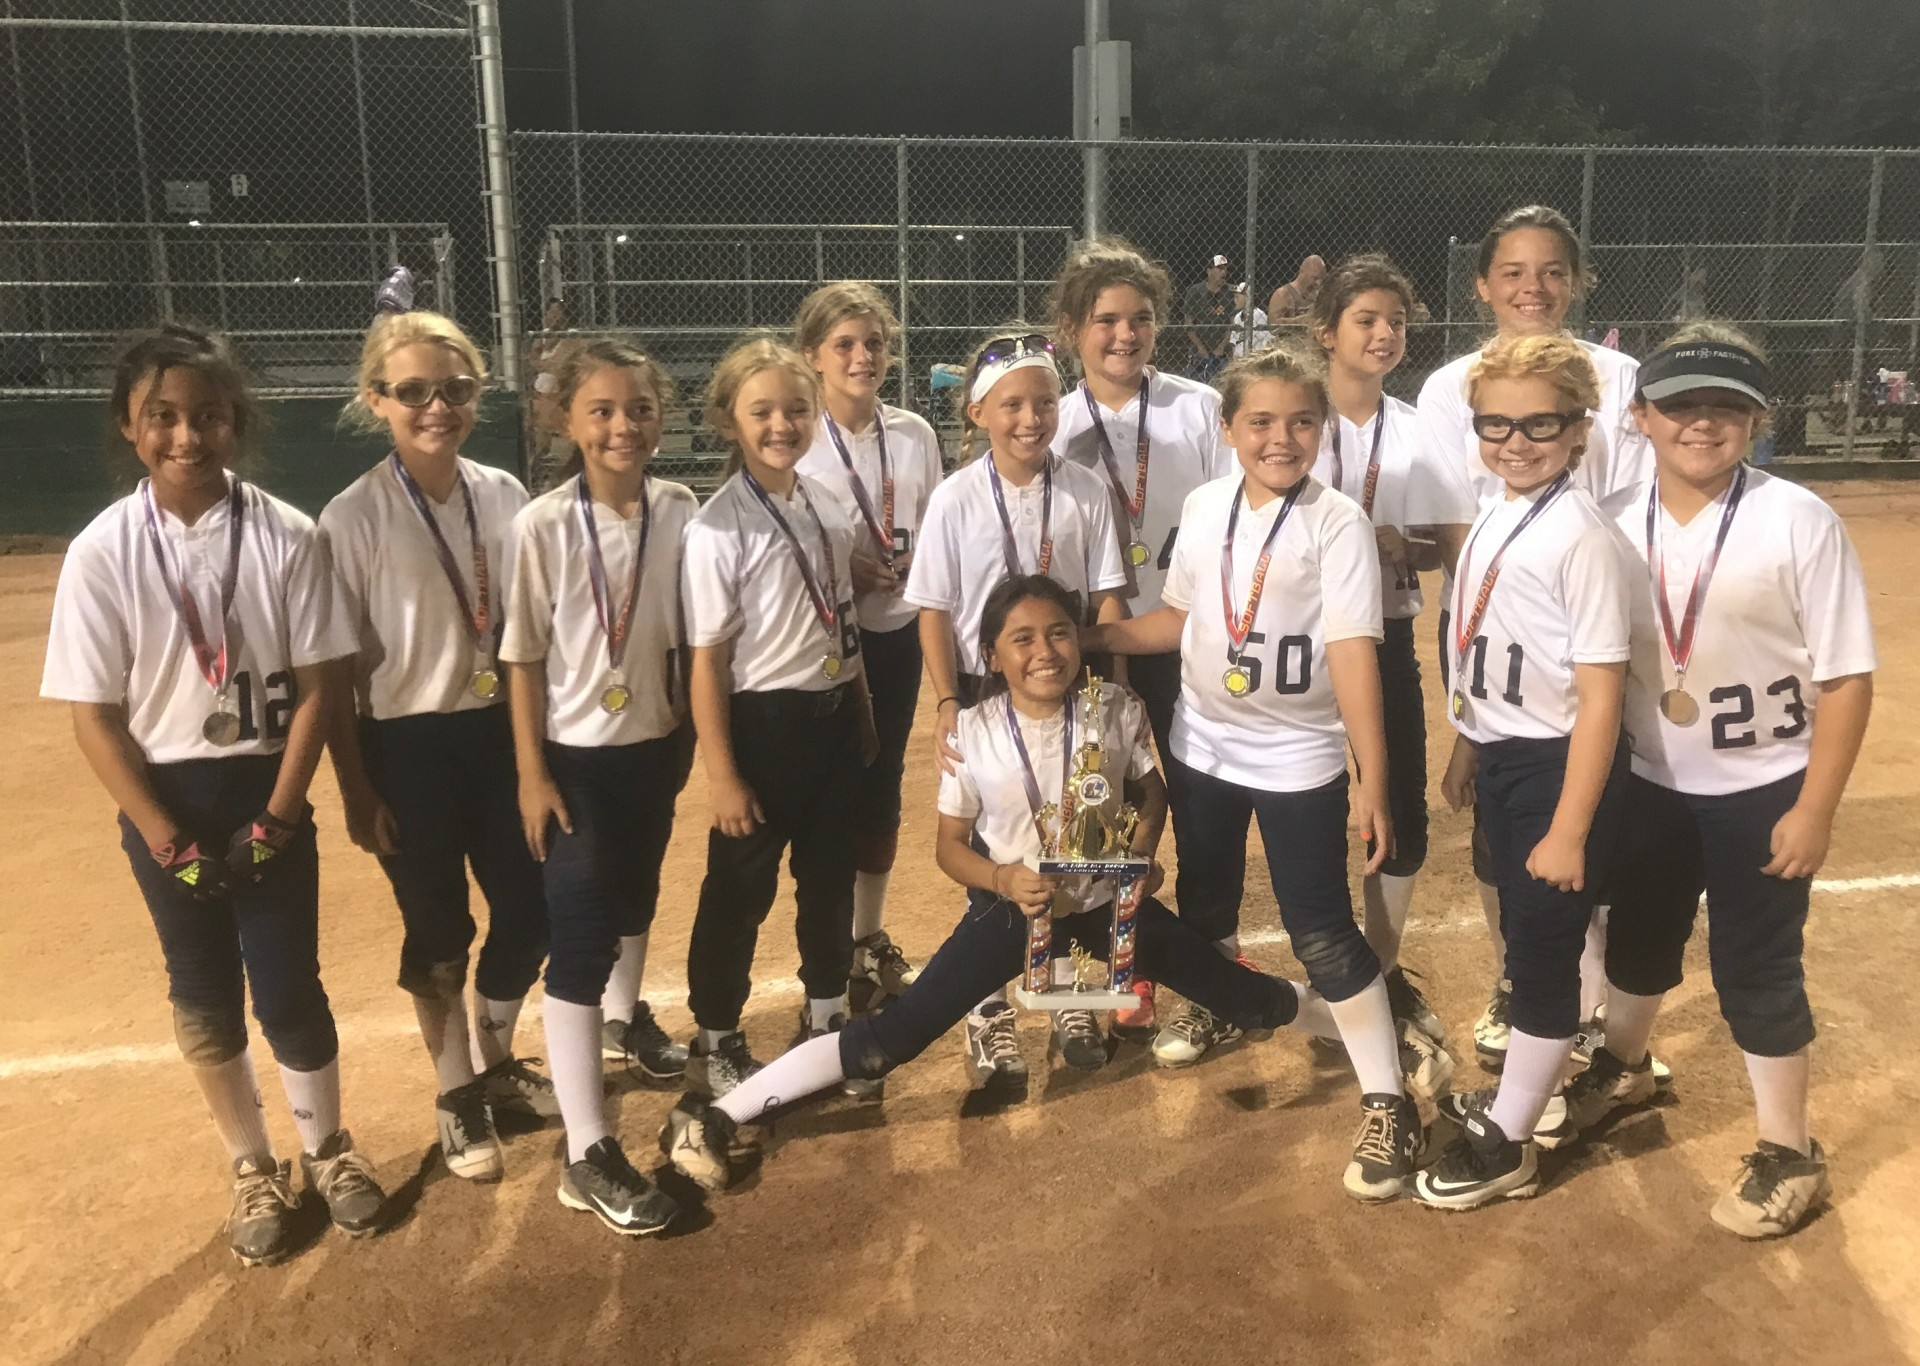 10u Runner-Up - Pure Fastpitch